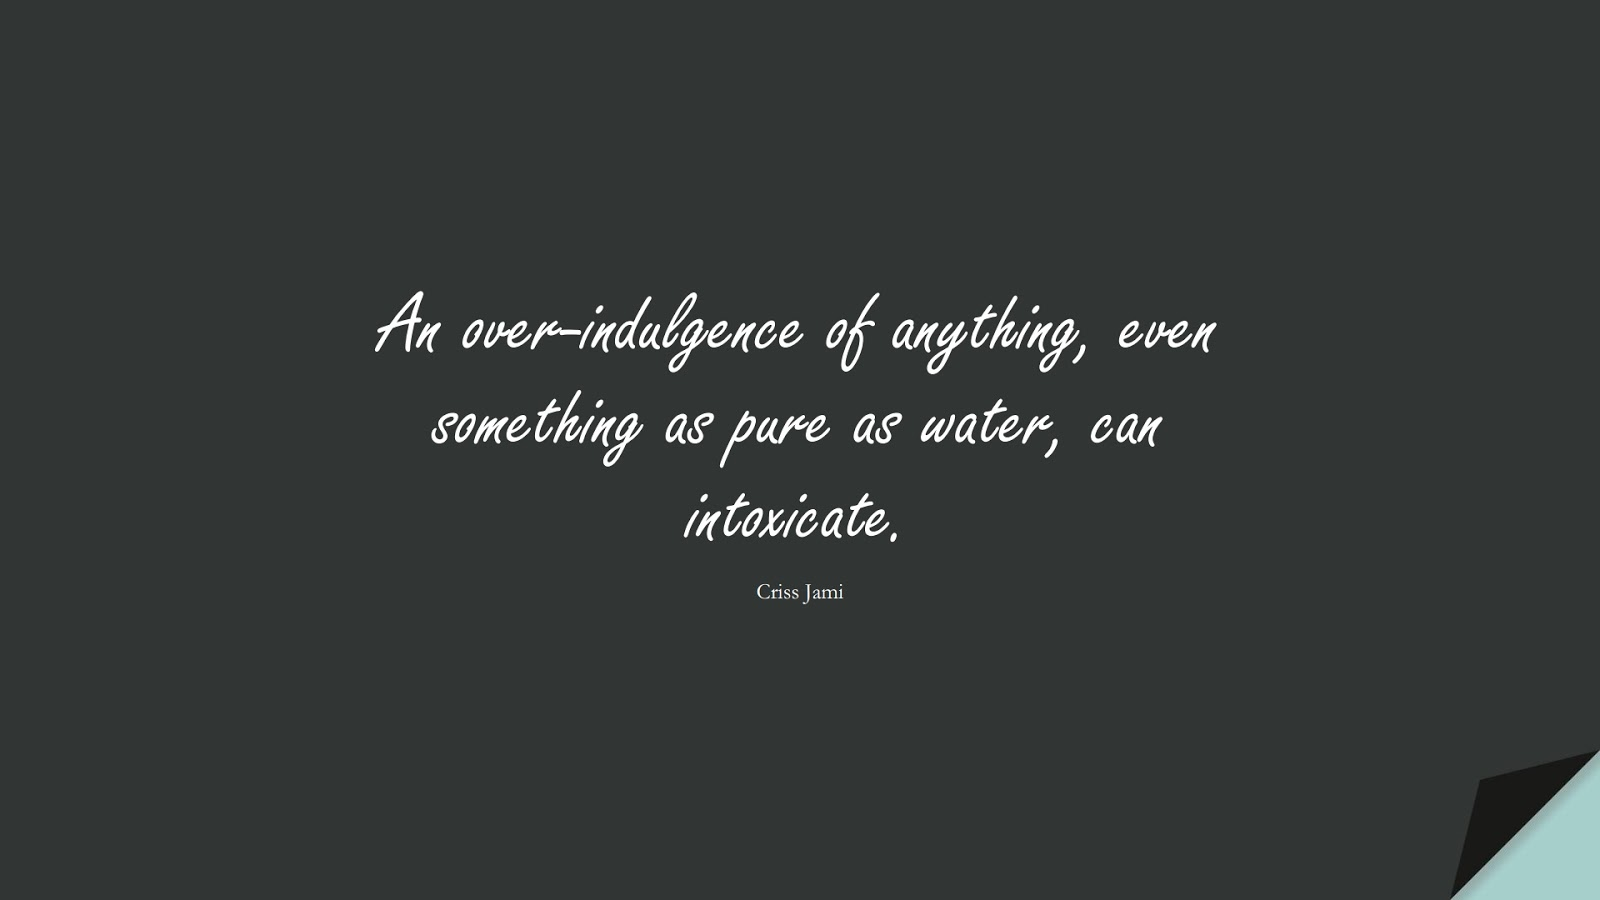 An over-indulgence of anything, even something as pure as water, can intoxicate. (Criss Jami);  #HealthQuotes